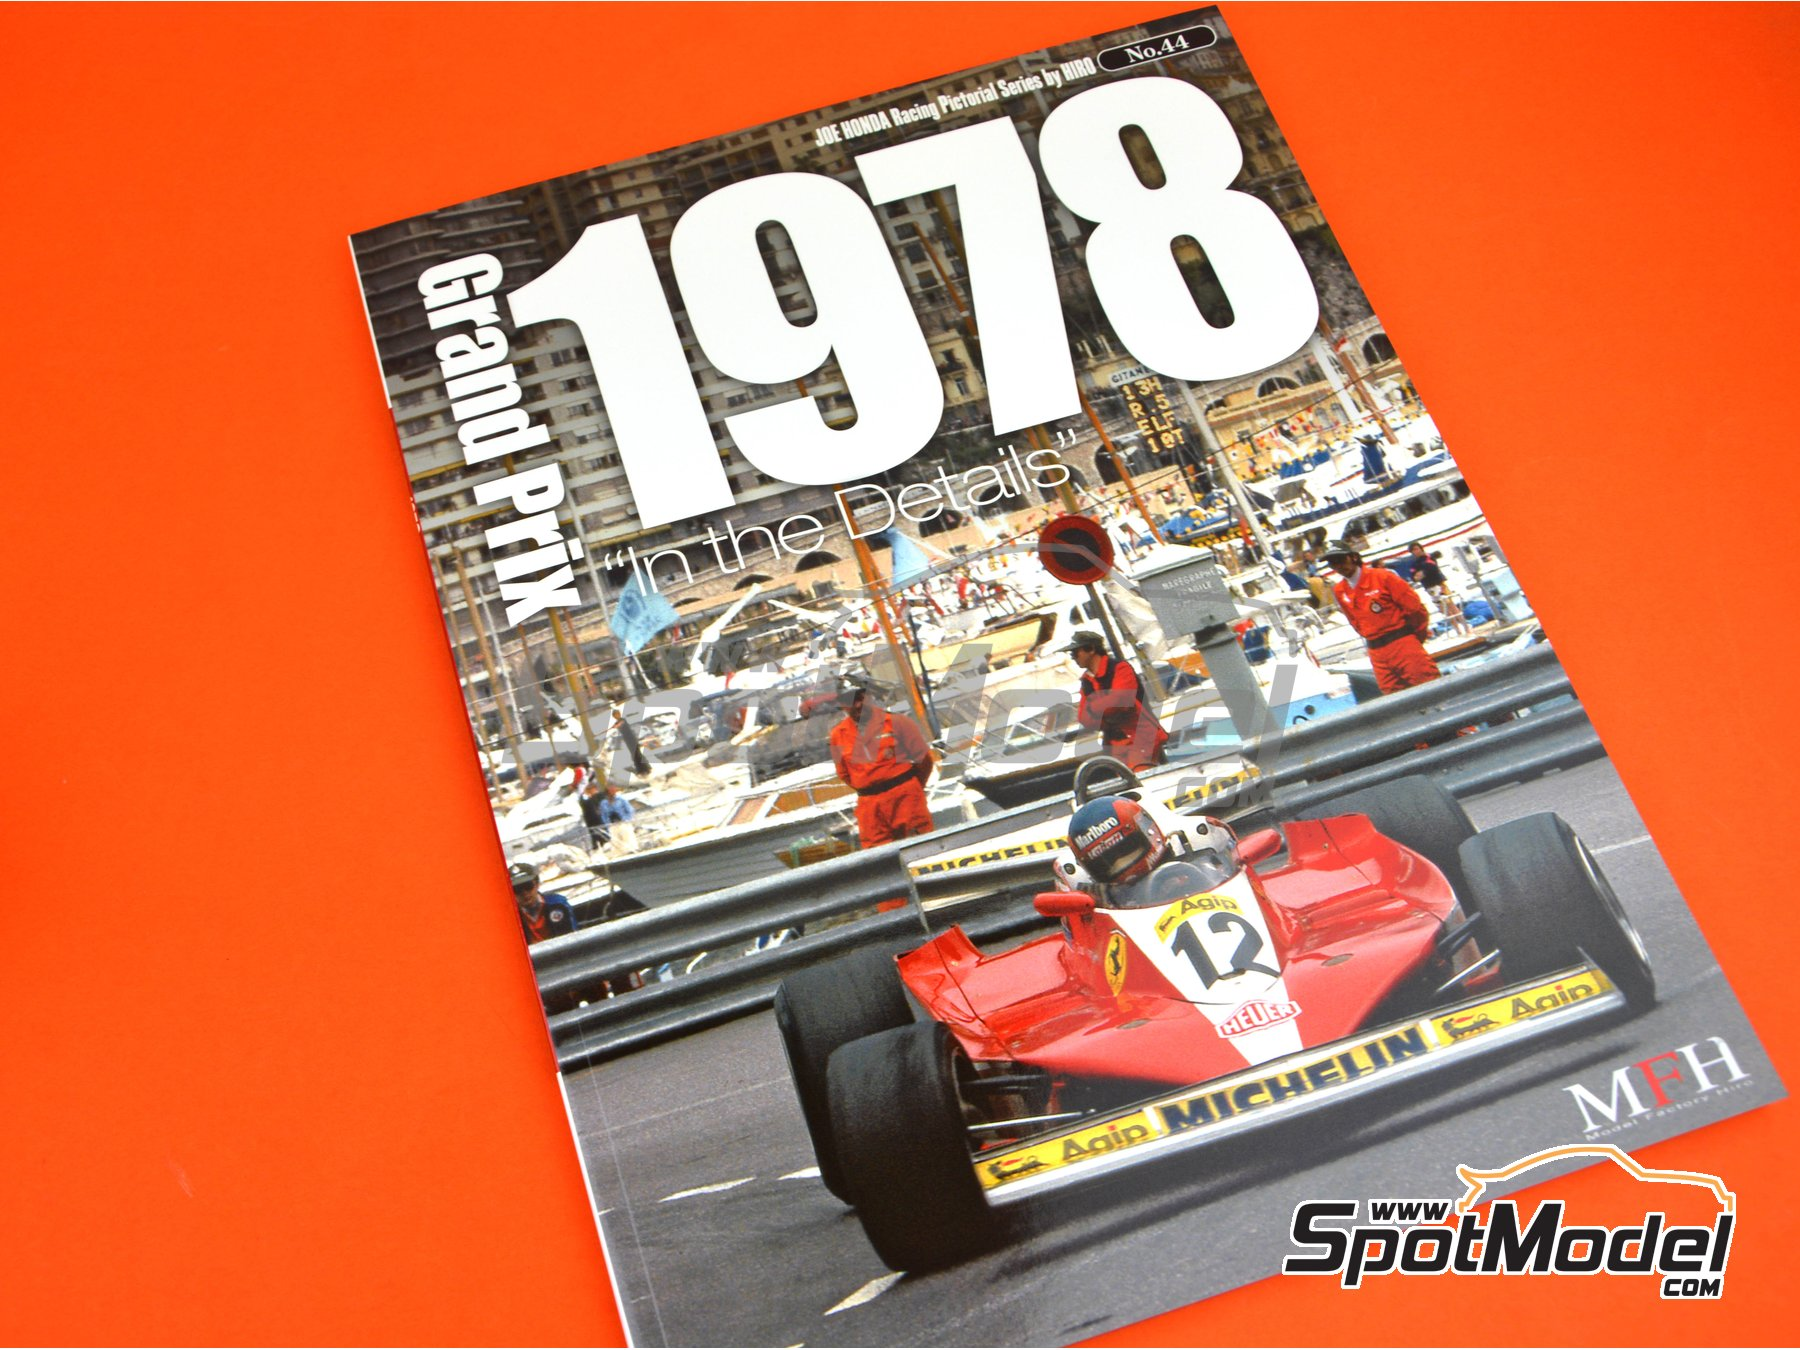 Image 1: Joe Honda Racing Pictorial Series: Grand Prix - FIA Formula 1 World Championship 1978 | Reference / walkaround book manufactured by Model Factory Hiro (ref. MFH-JH44)